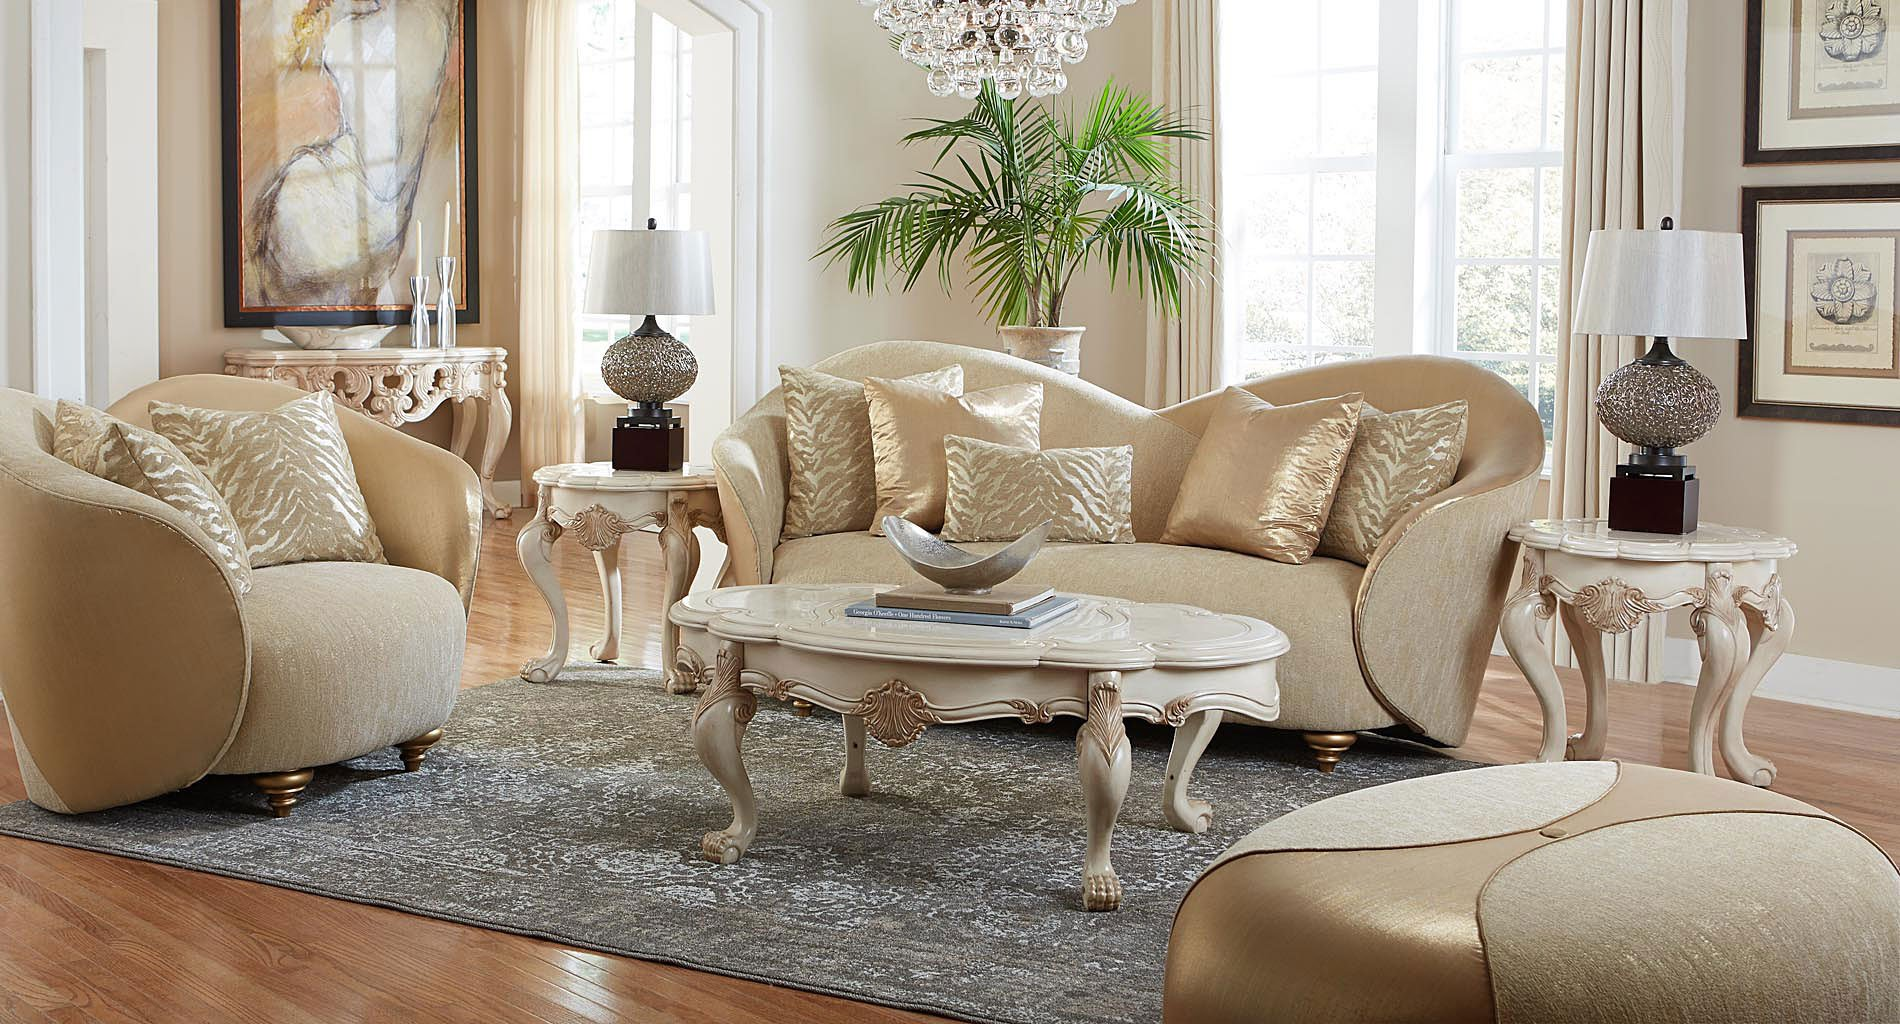 Chateau de lago occasional table set aico furniture for Lago furniture